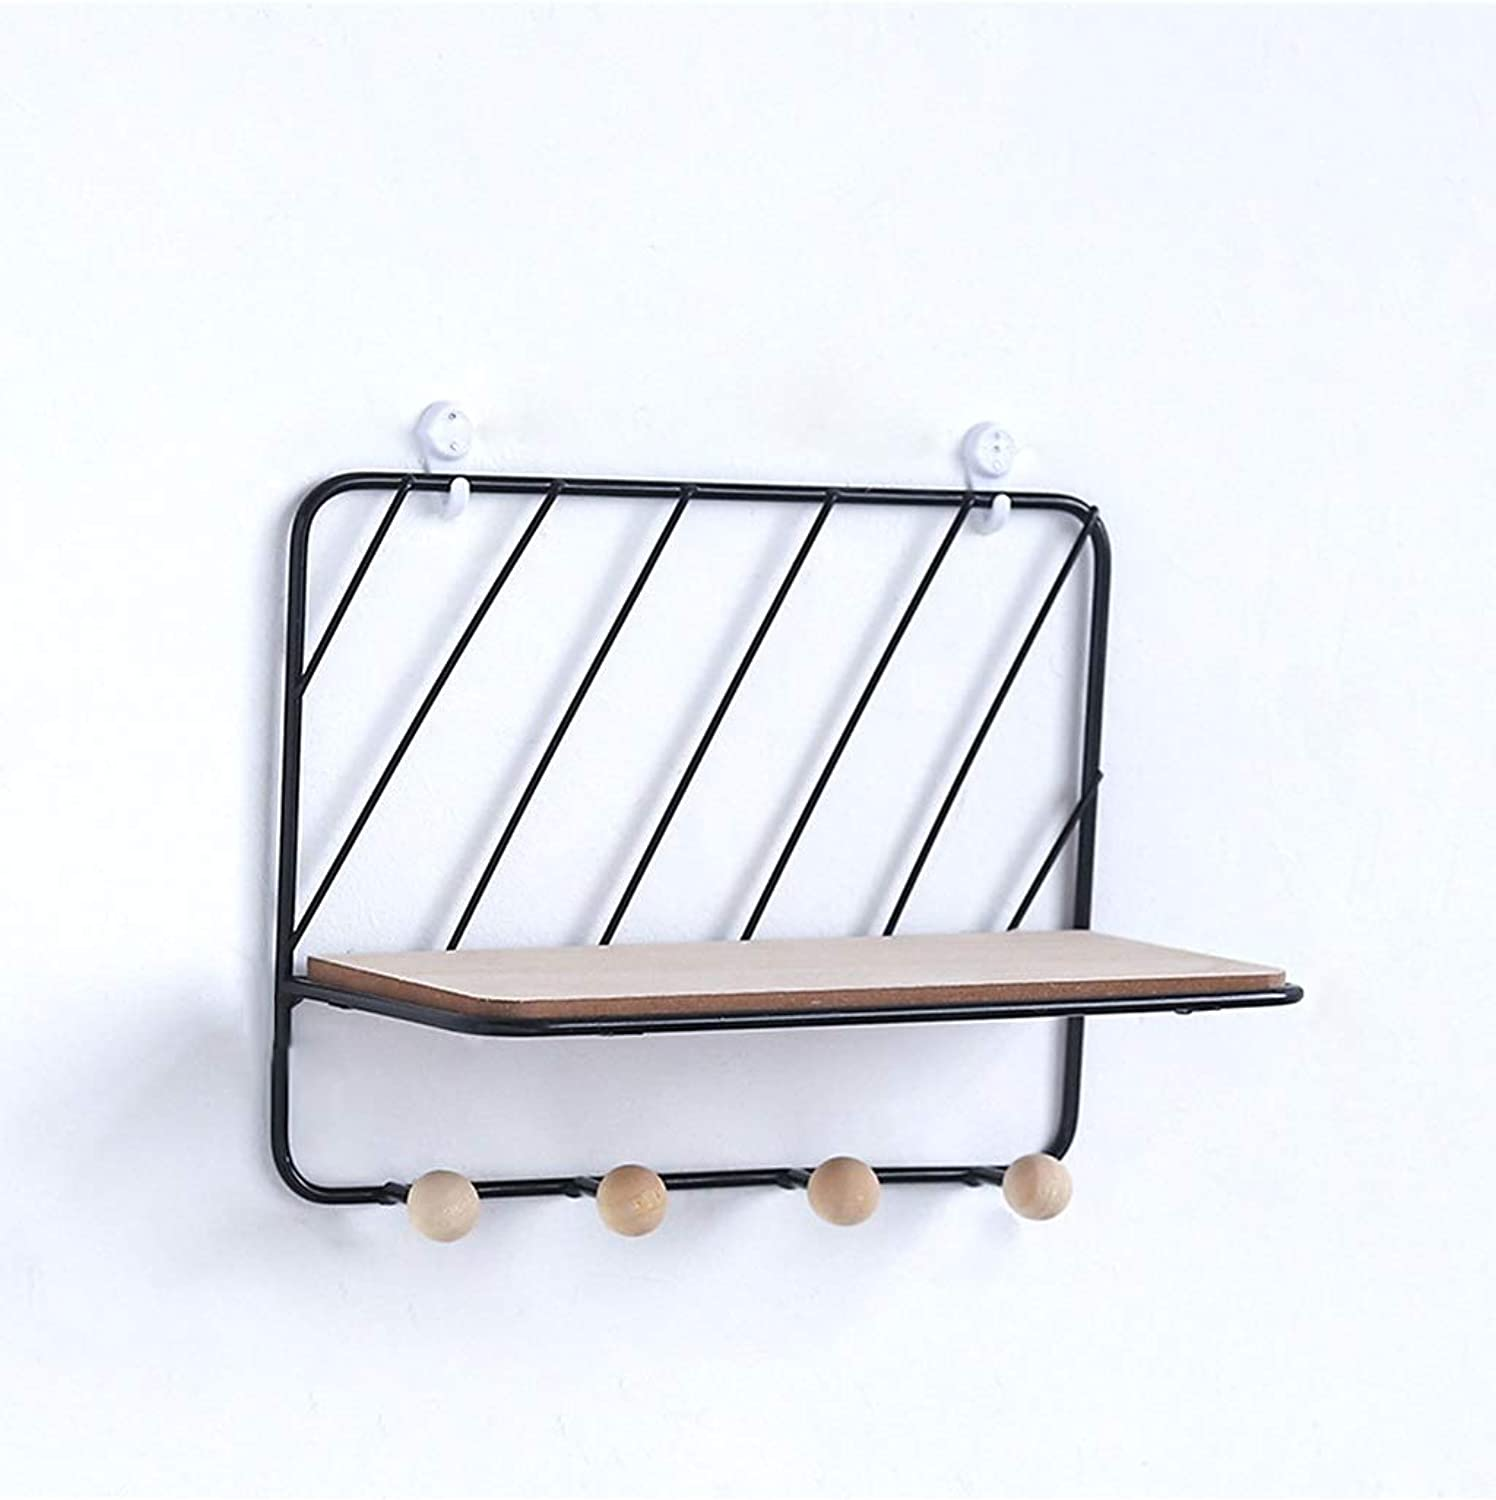 Entrance Storage Rack Wrought Iron Twill Grid Rack with 4 Hooks European Style Living Room Bedroom Wall Hook Decoration Wall Hanger (color   Black)